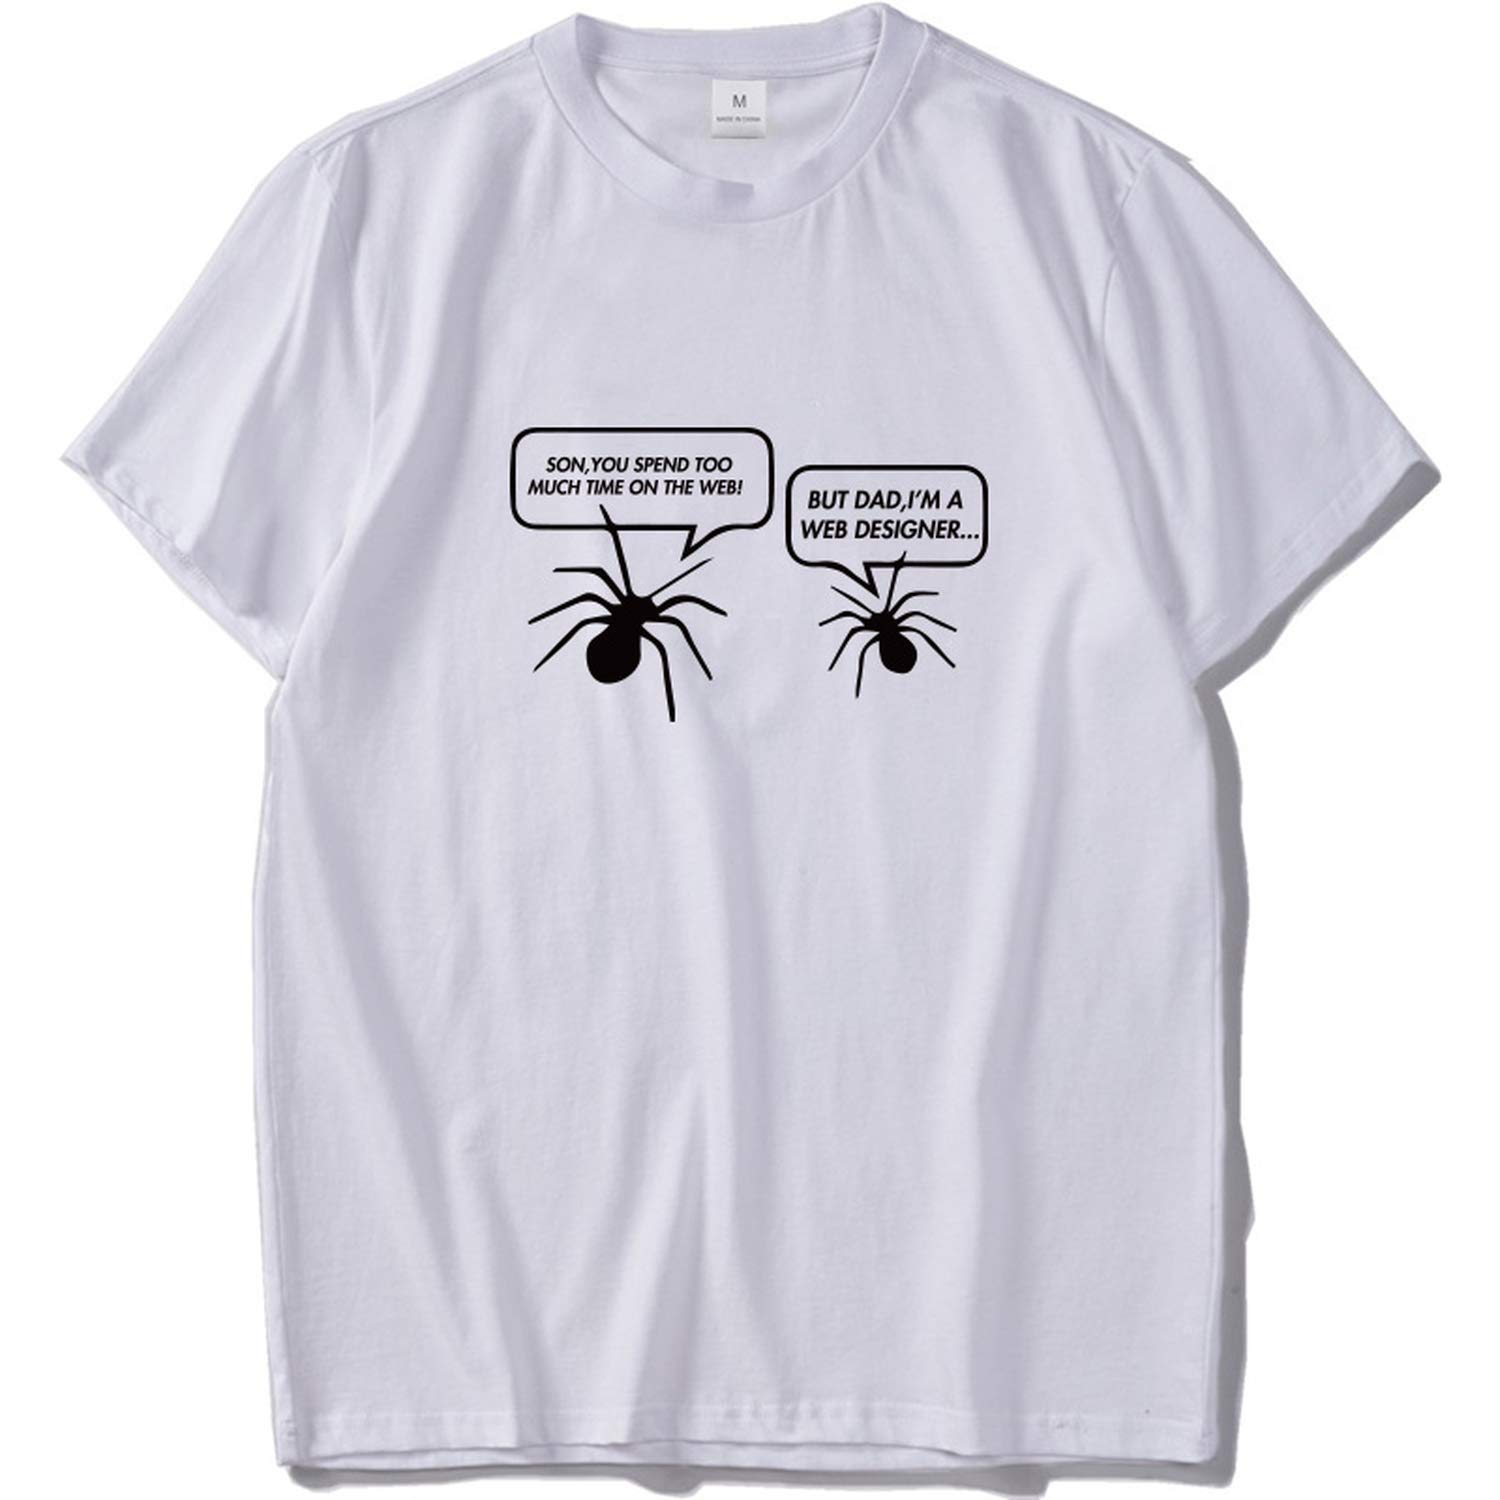 Programmer T Shirt Funny I M A Weber Tshirt Round Neck Fashion Tee Spider Tops 2467